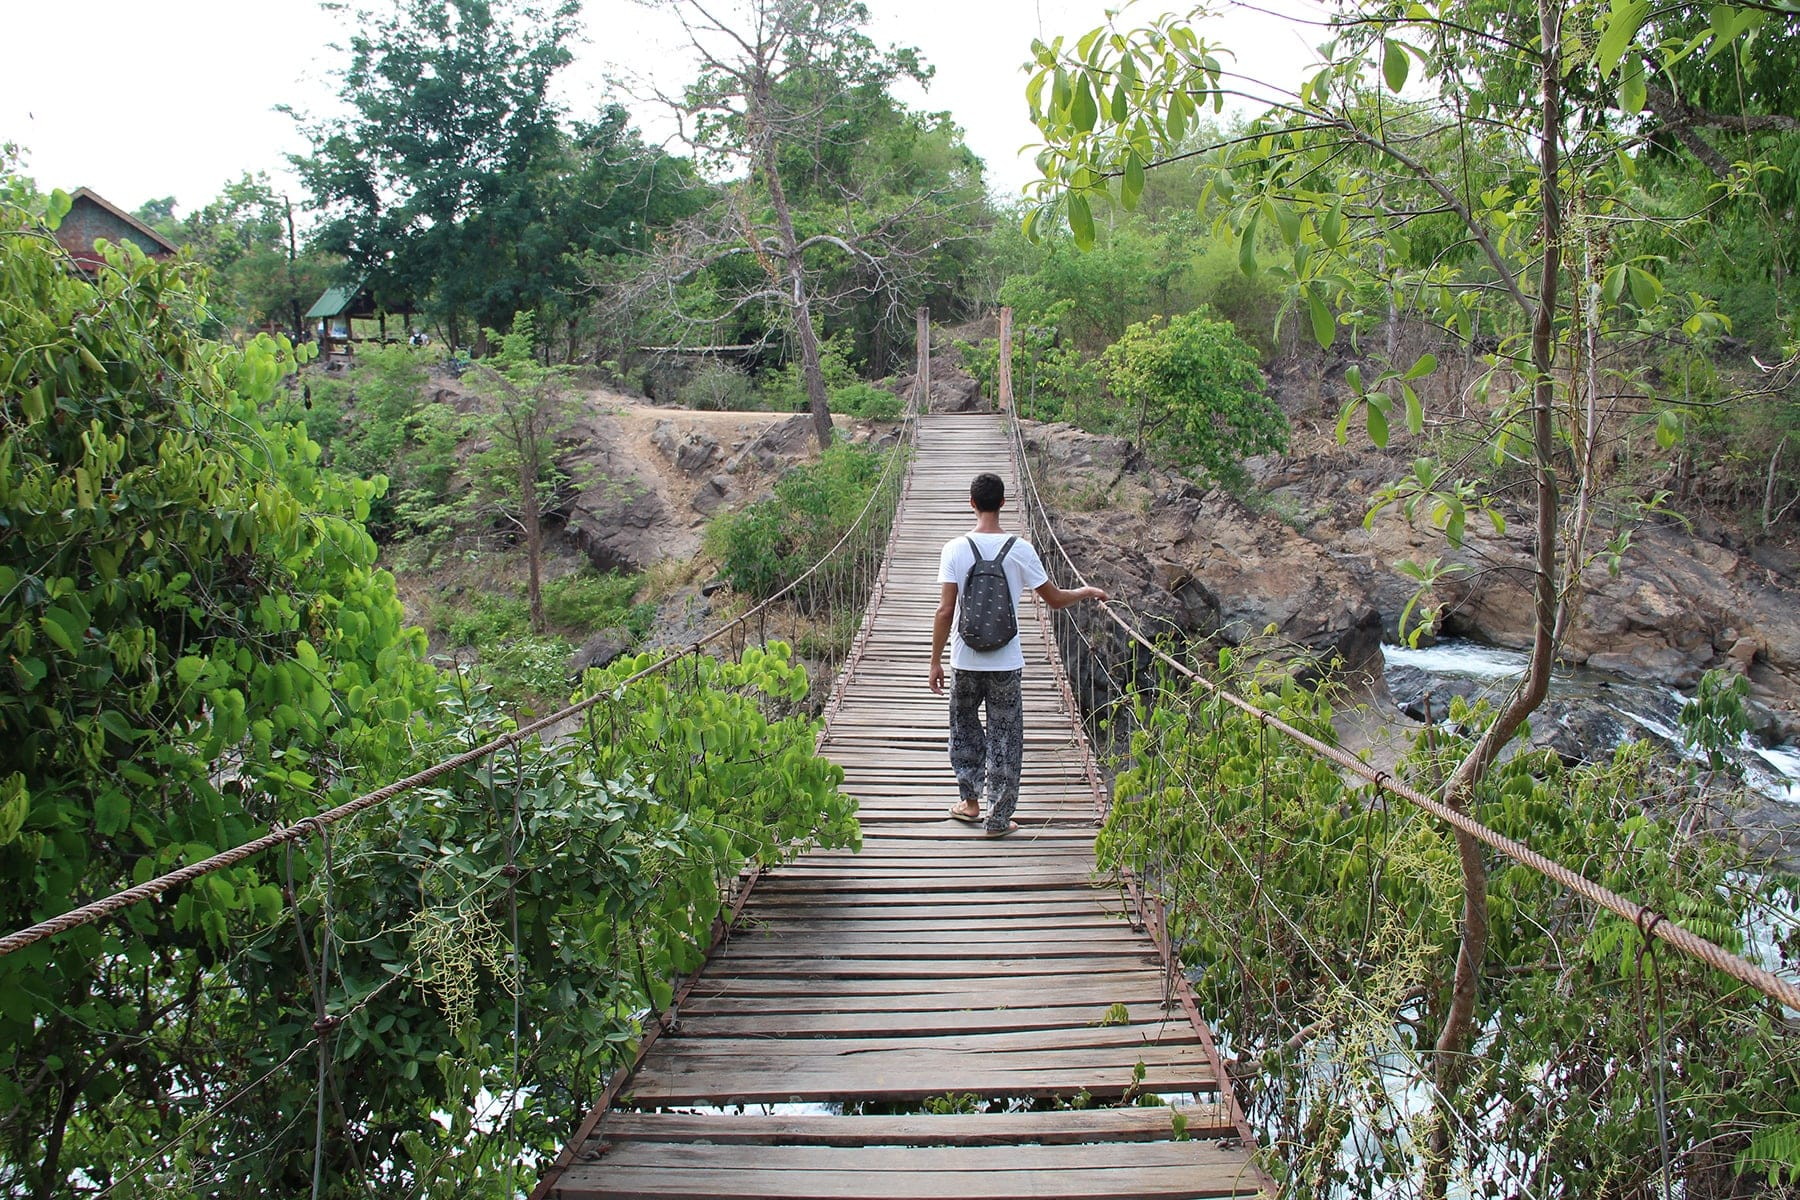 The bridge in Khong Pa Soi falls